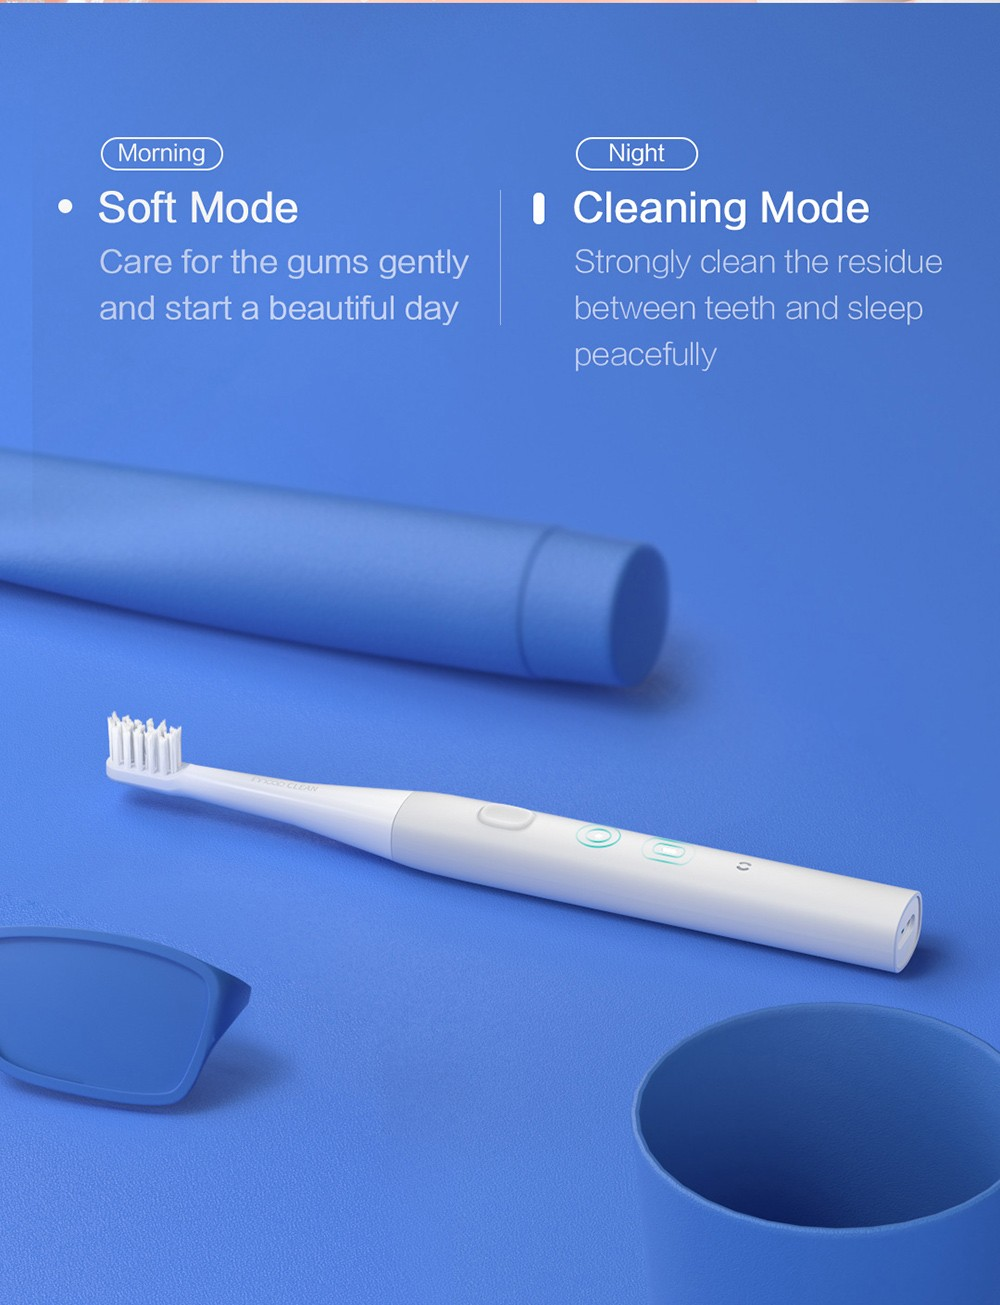 PT01 Electric Toothbrush two modes